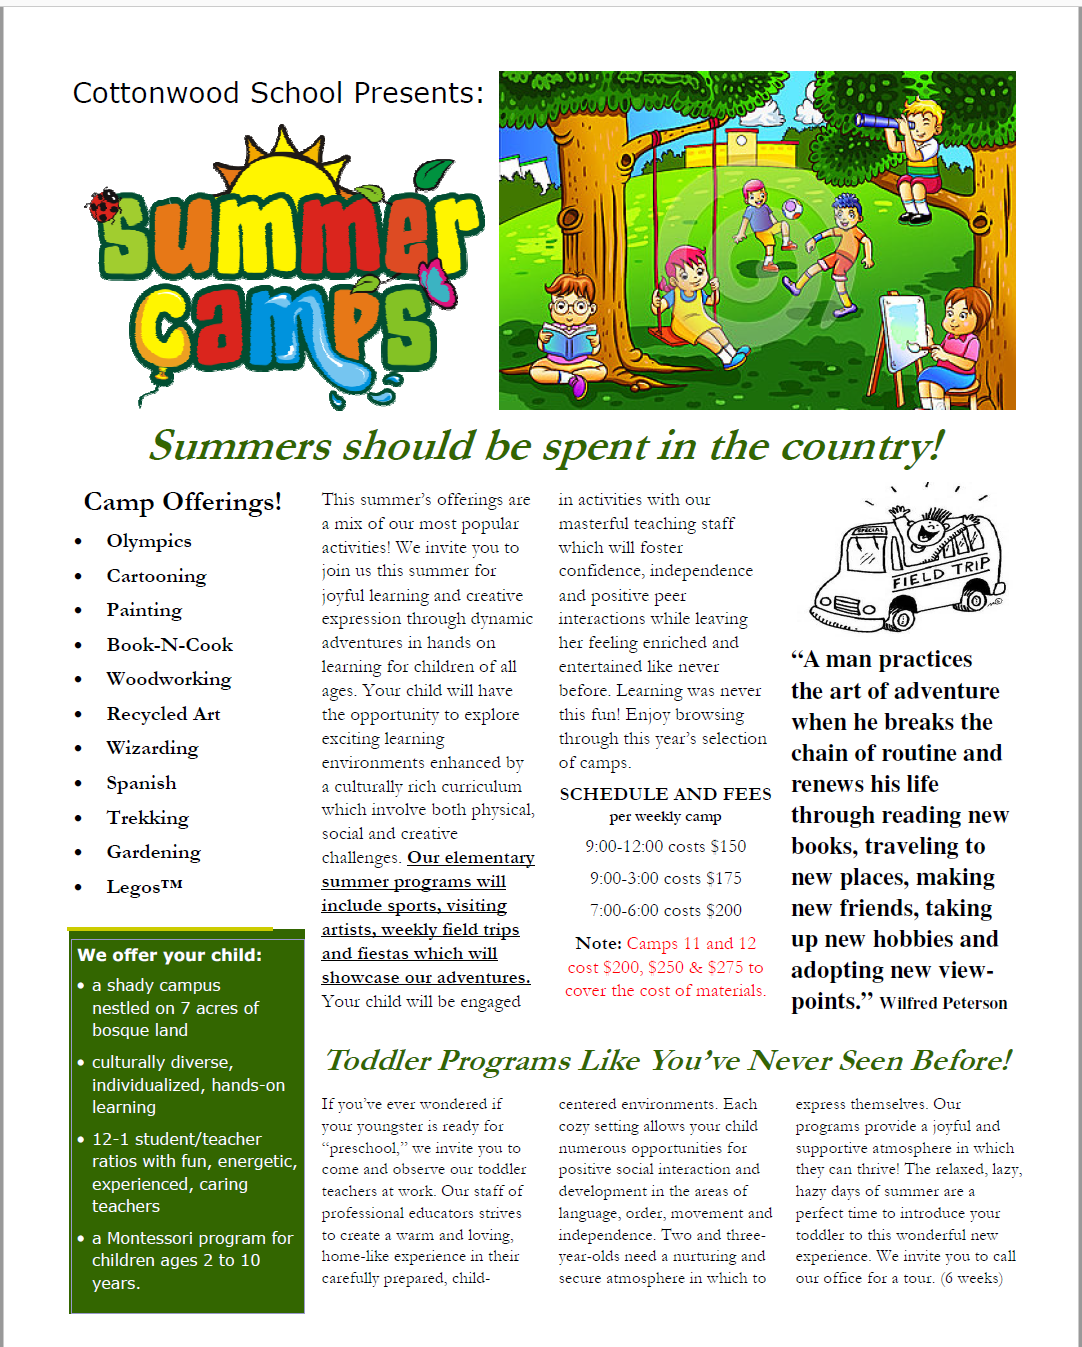 Summer Camp in the Country at Cottonwood School